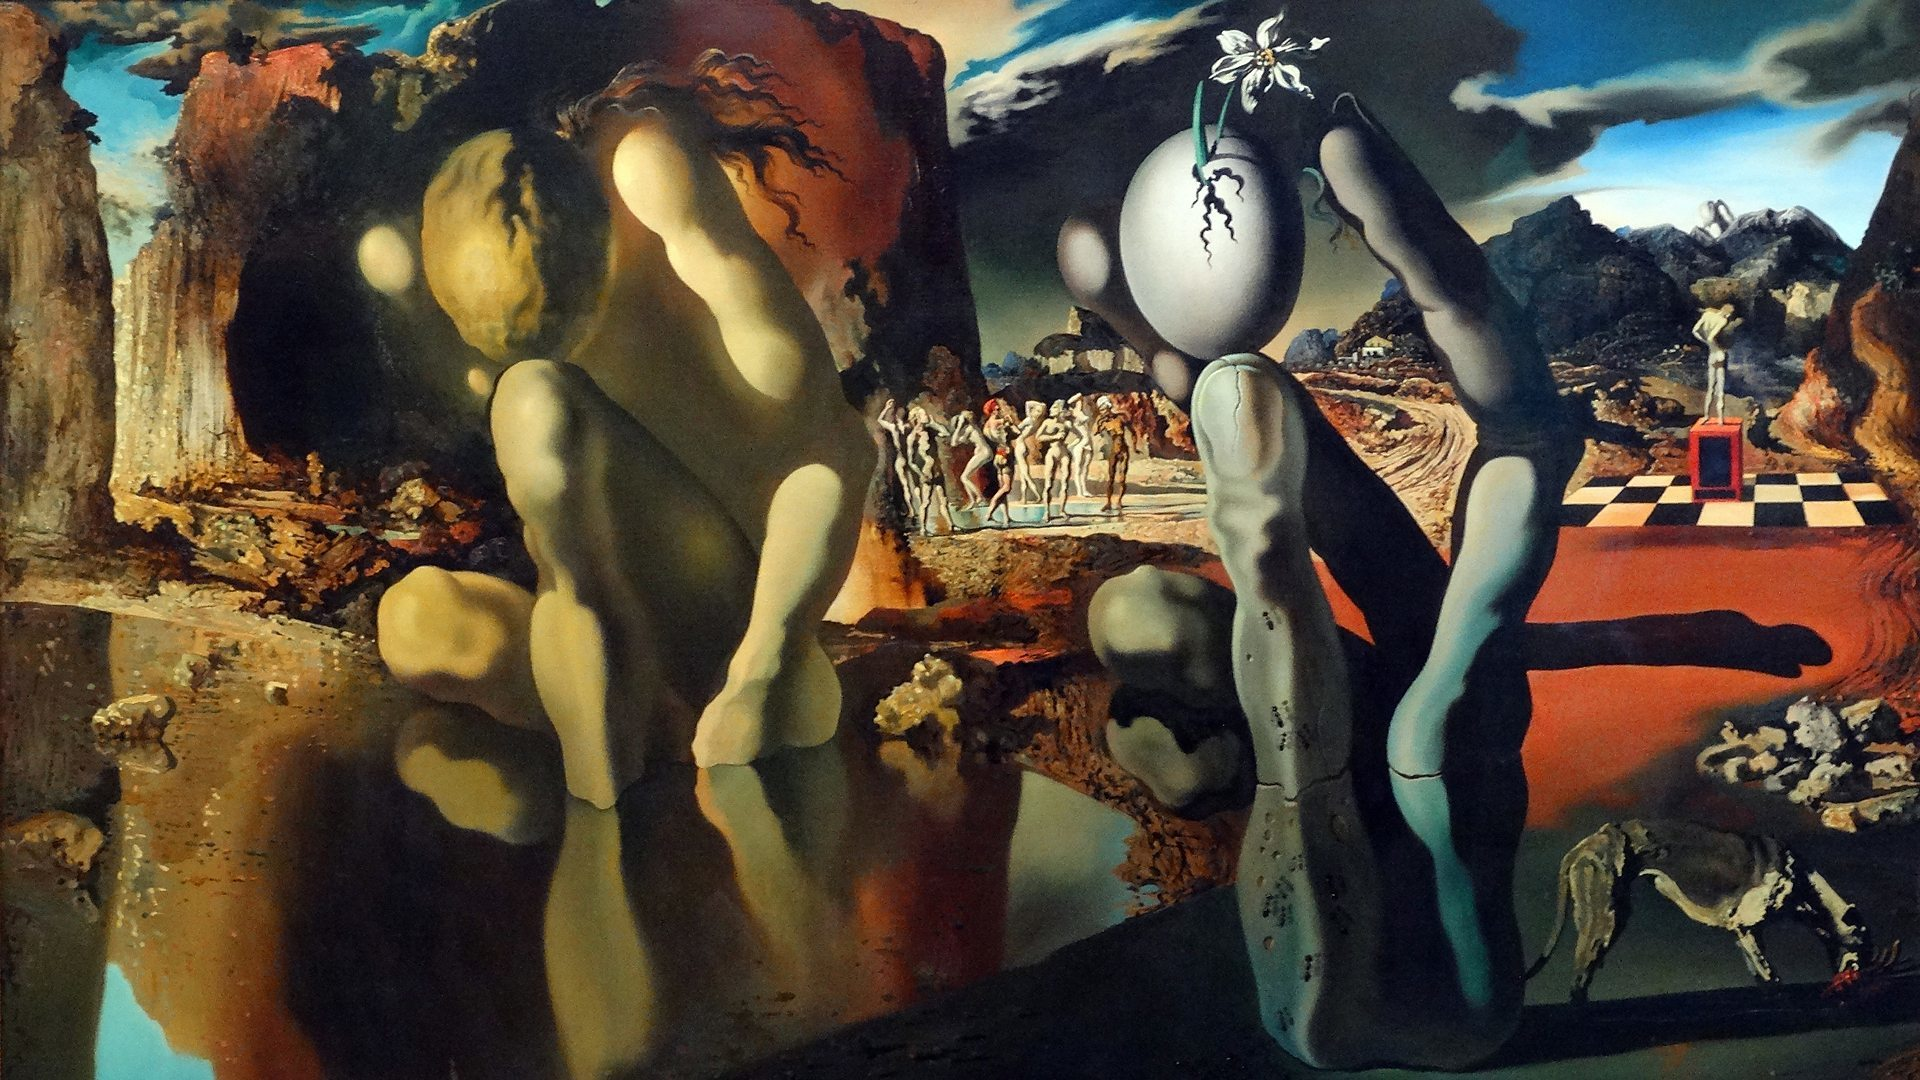 Salvador Dalí, The Metamorphosis of Narcissus, 1937. Foto: Tate Modern.